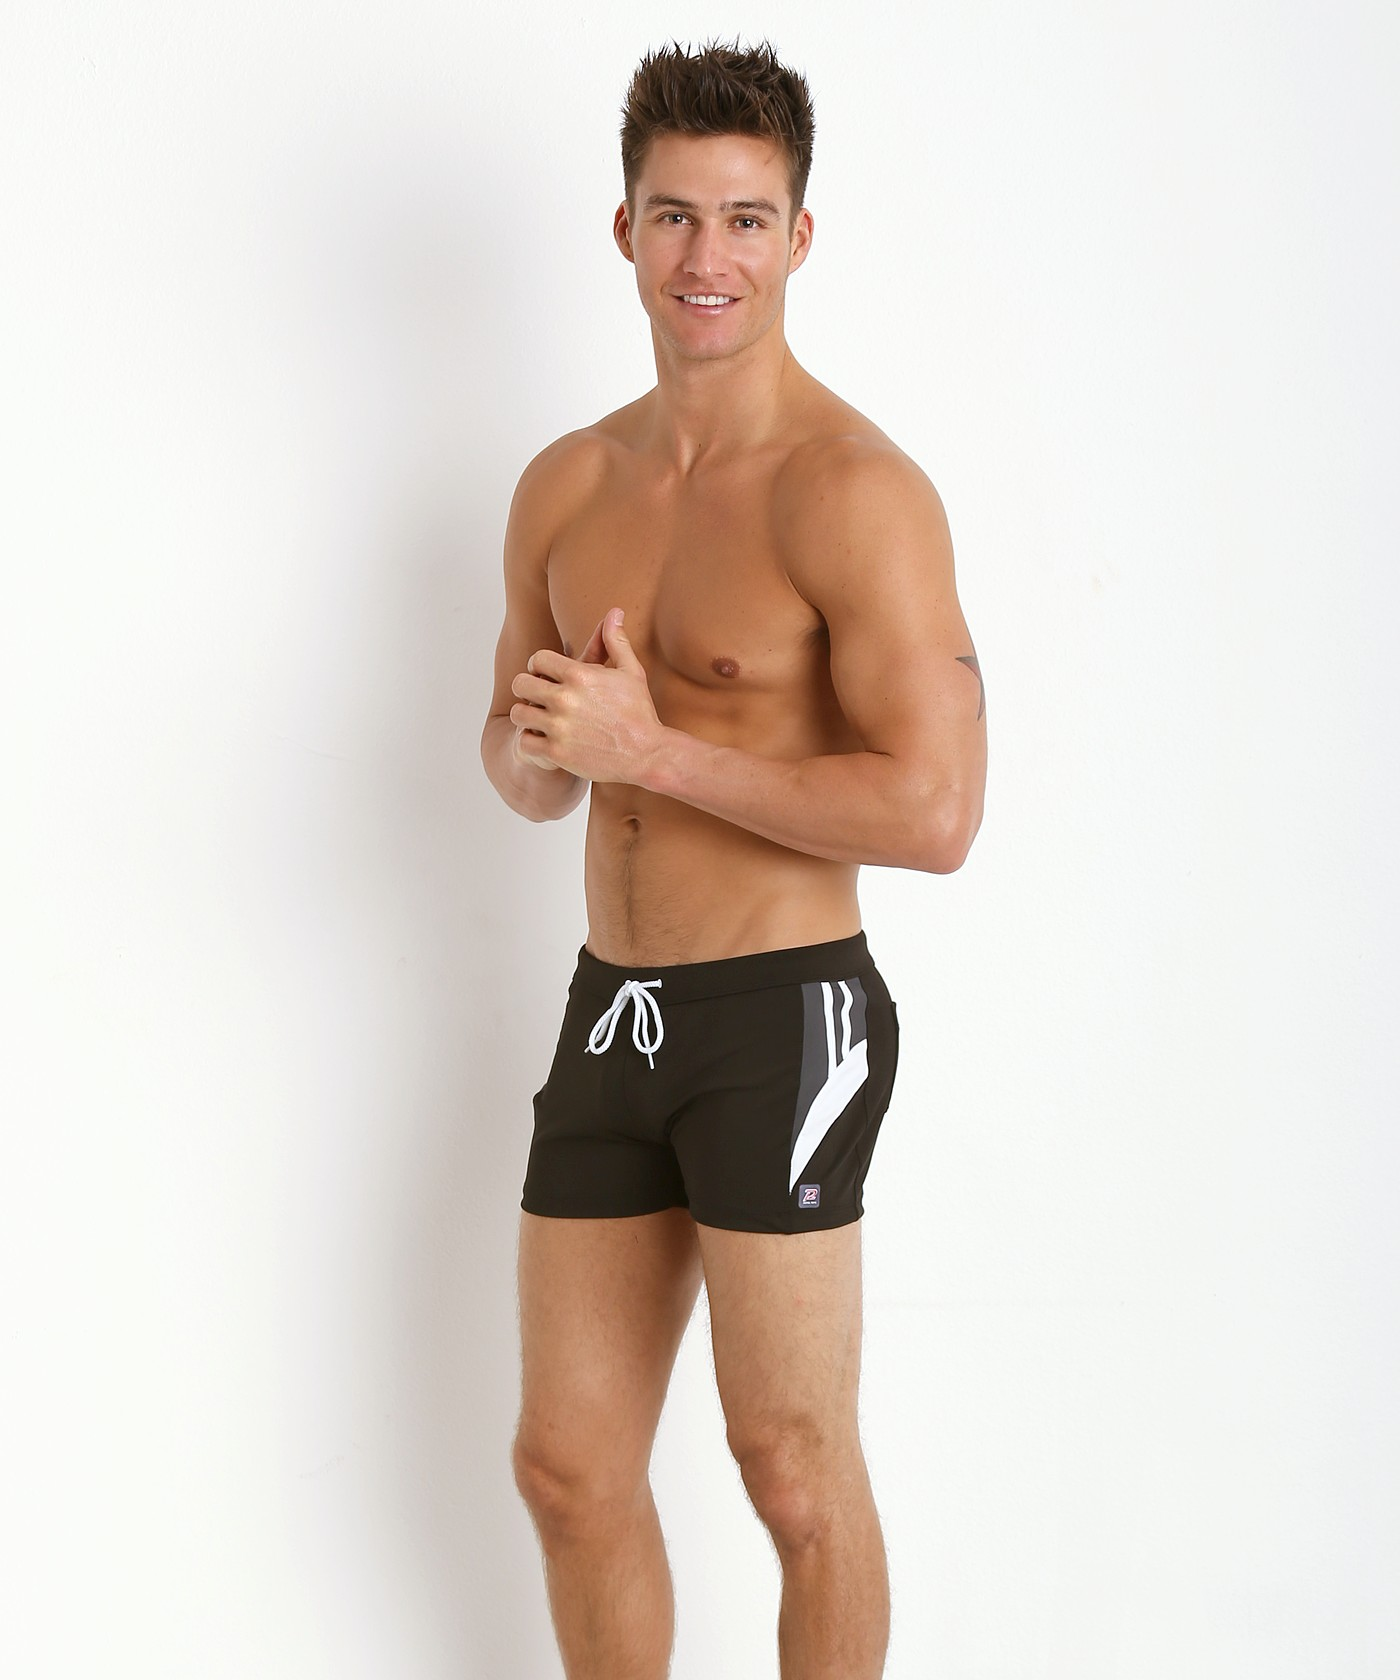 Pistol Pete Sportek Sport Short Black Sh125 528 At International Jock Thousands of companies like you use panjiva to research suppliers and competitors. pistol pete sportek sport short black sh125 528 at international jock